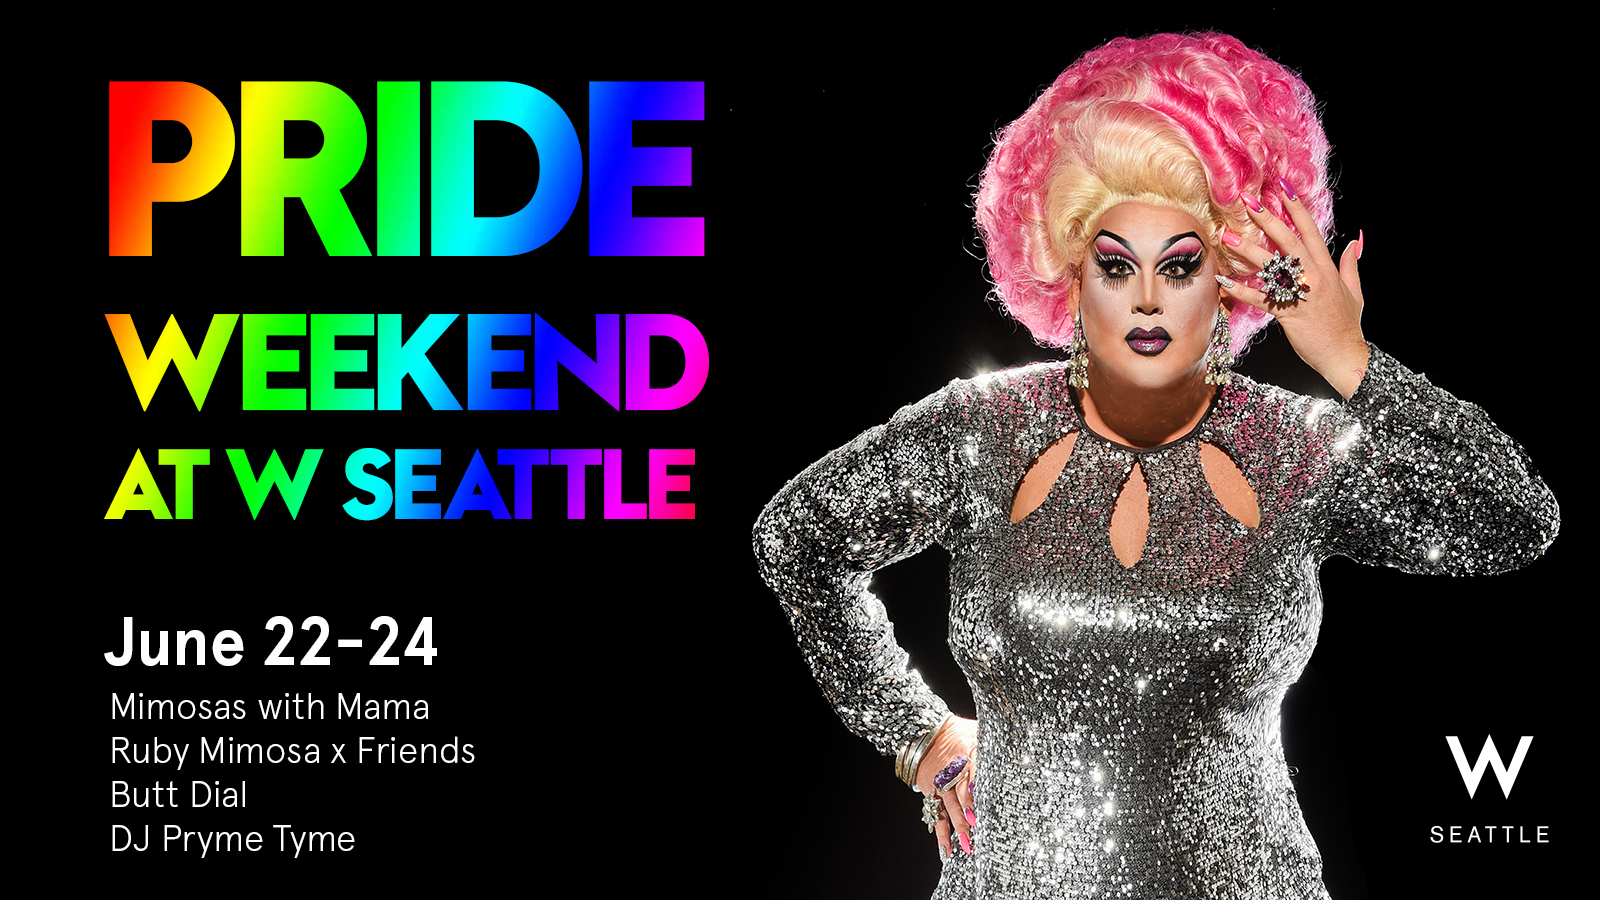 Pride Weekend at W Seattle Featuring Mama Tits